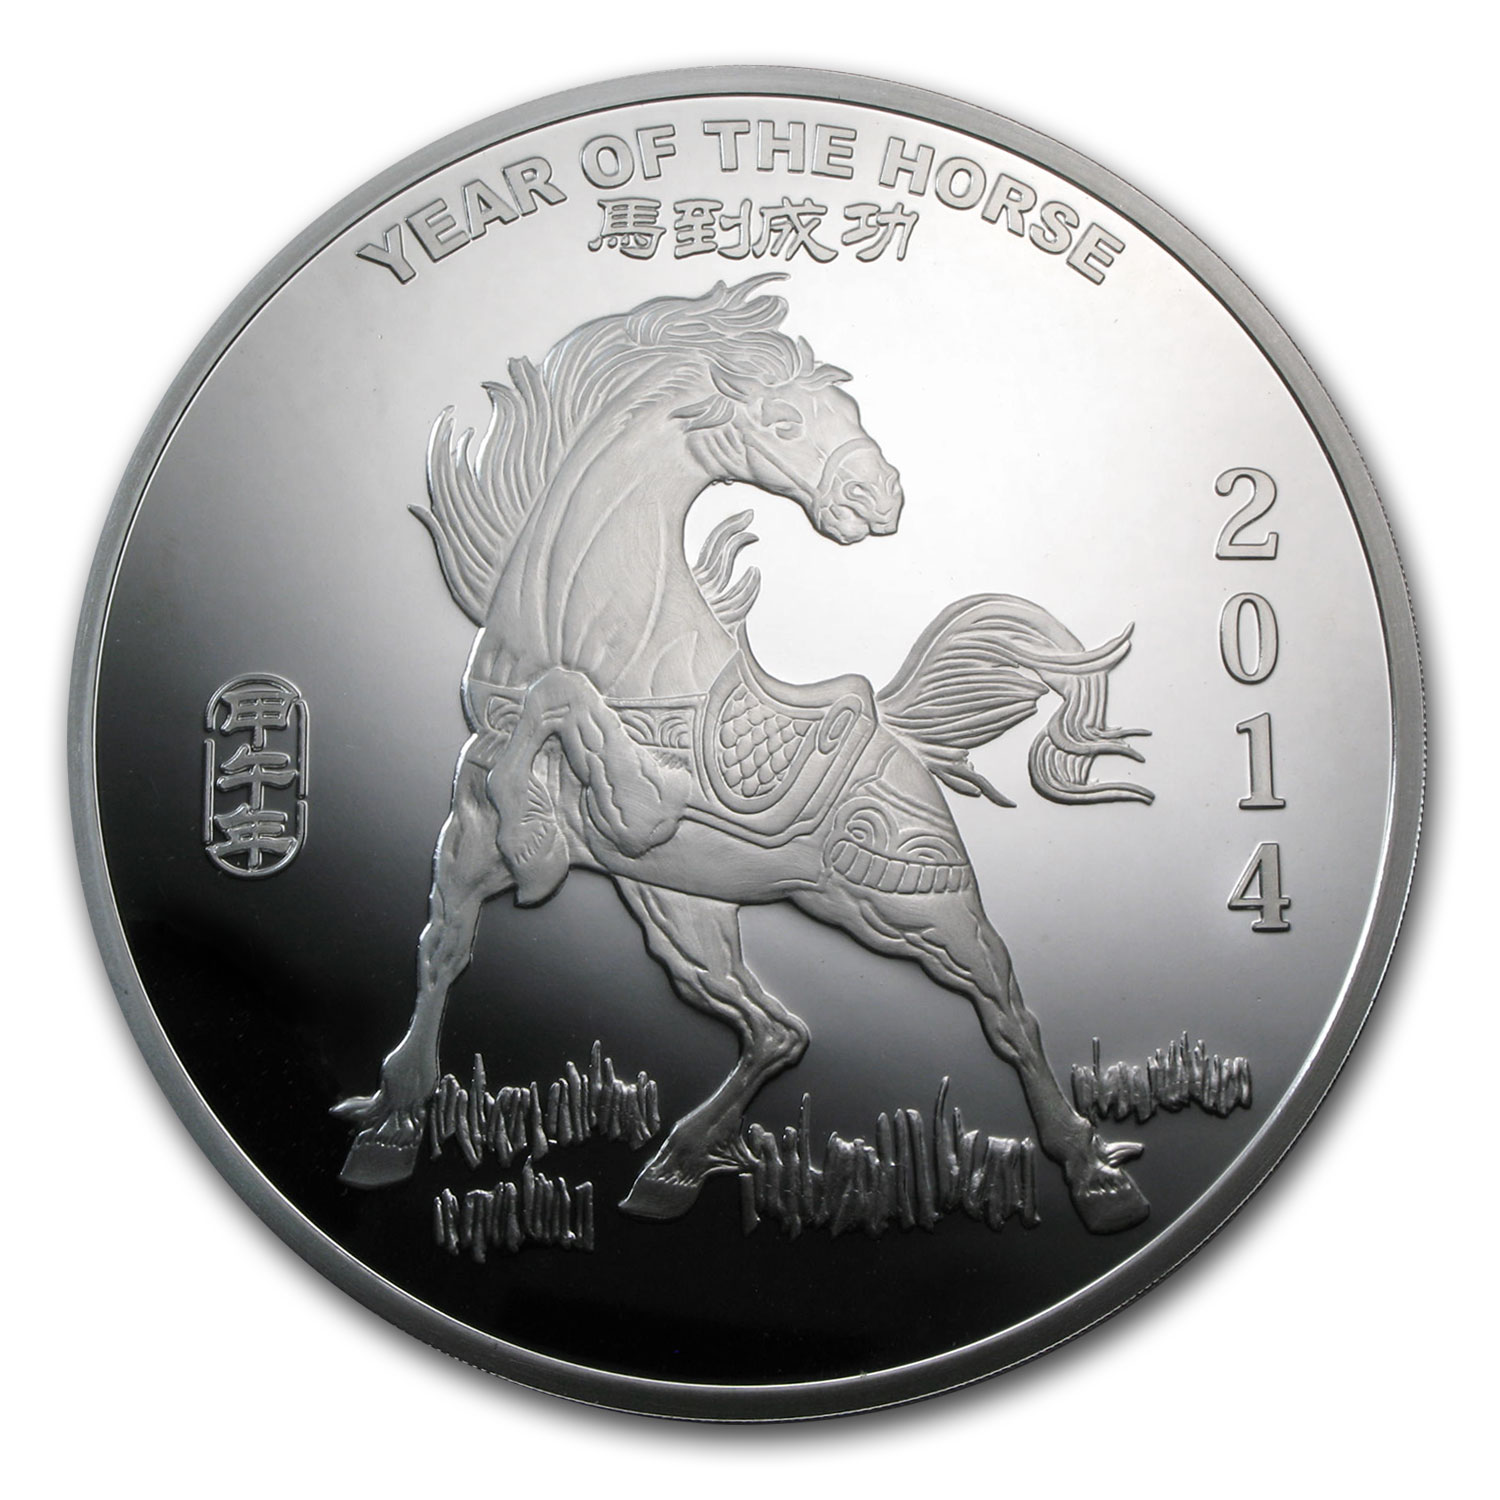 10 oz Silver Round - APMEX (2014 Year of the Horse)